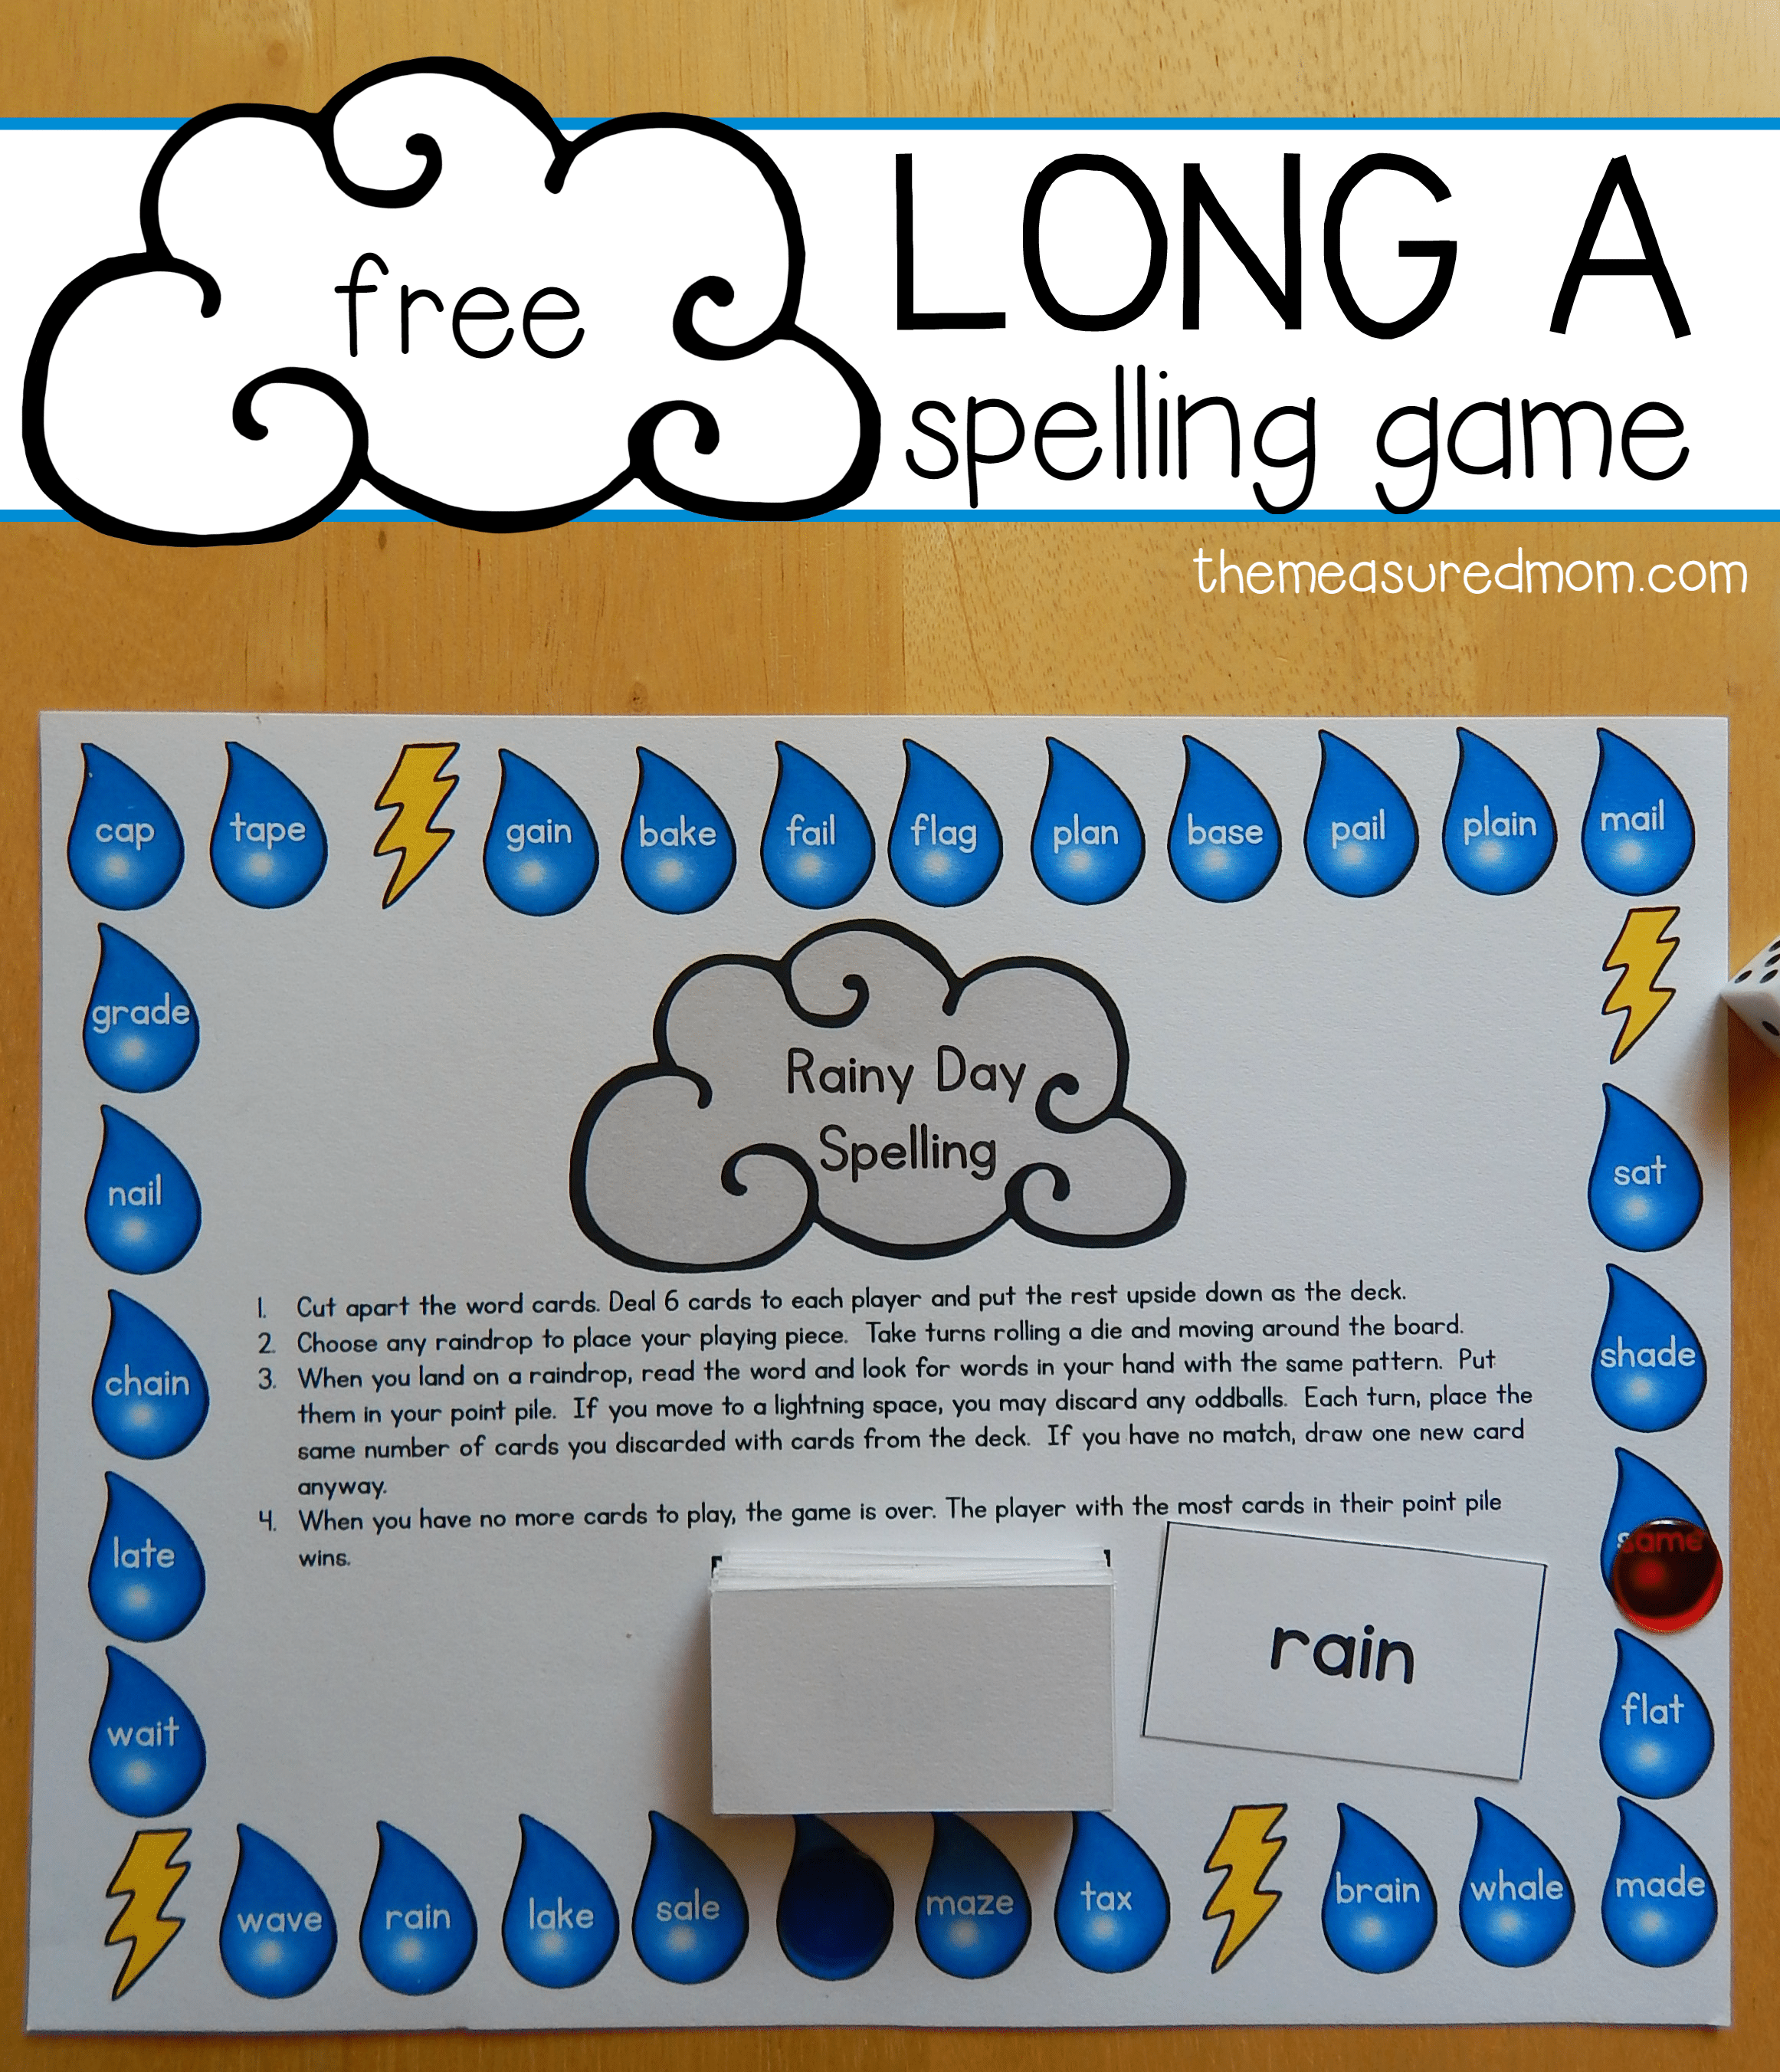 Free Home Design Create Play Educational Quiz Games: Free Long A Spelling Game For A-e And Ai Words